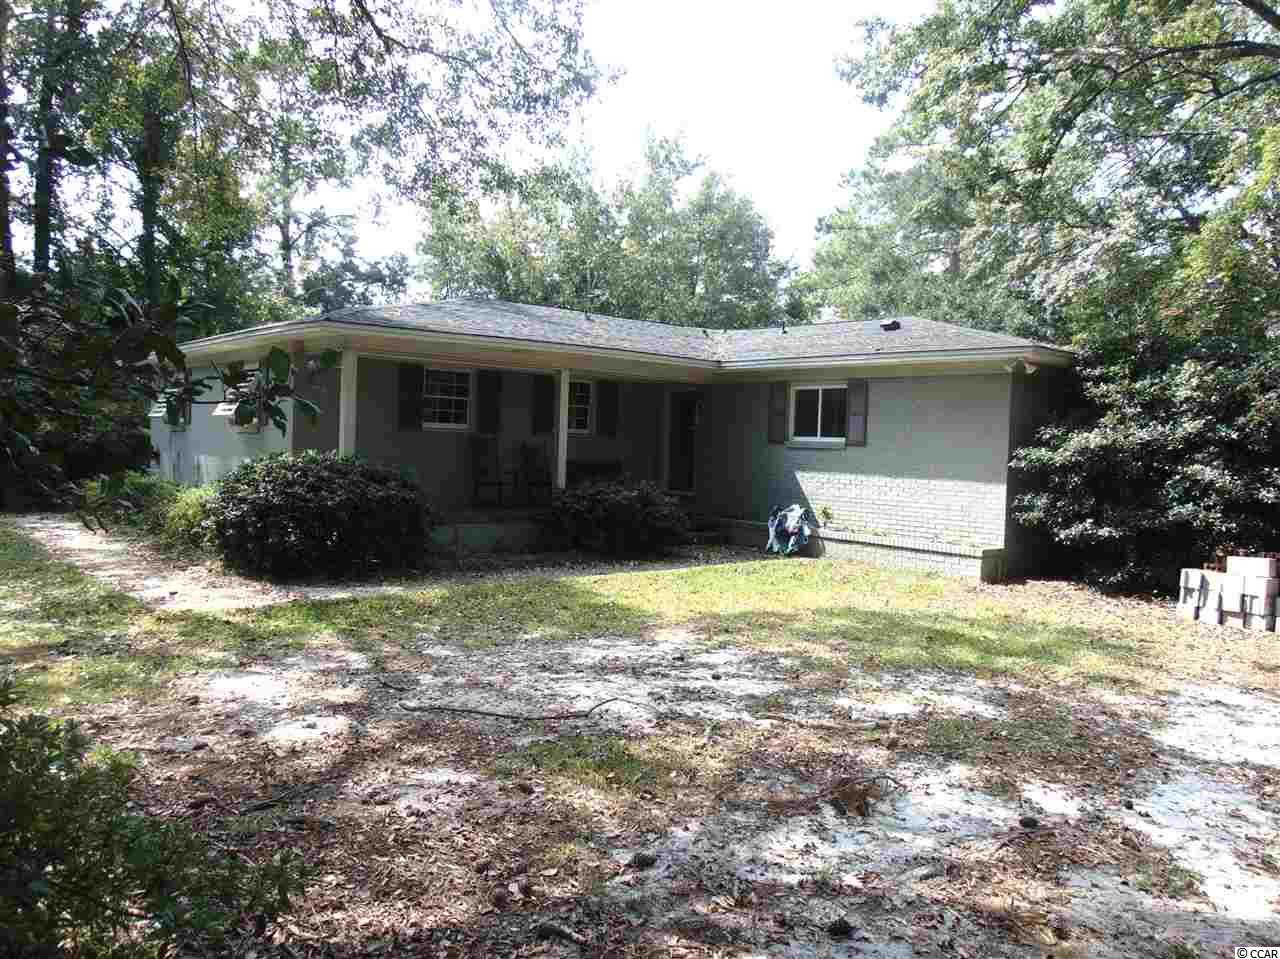 TOTALLY REMODELED AND UPDATED HOME IN THE OCEAN DRIVE SECTION LARGE 2/3 ACRE WOODED LOT. VERY PRIVATE. LOCATED ON THE 6TH GREEN OF THE SURF CLUB GREAT VIEW WITH WATER ON 2 SIDES.  OUTDOOR KITCHEN AND ENTERTAINING SPACE. CREATED BY CONTRACTOR AND ARTIST